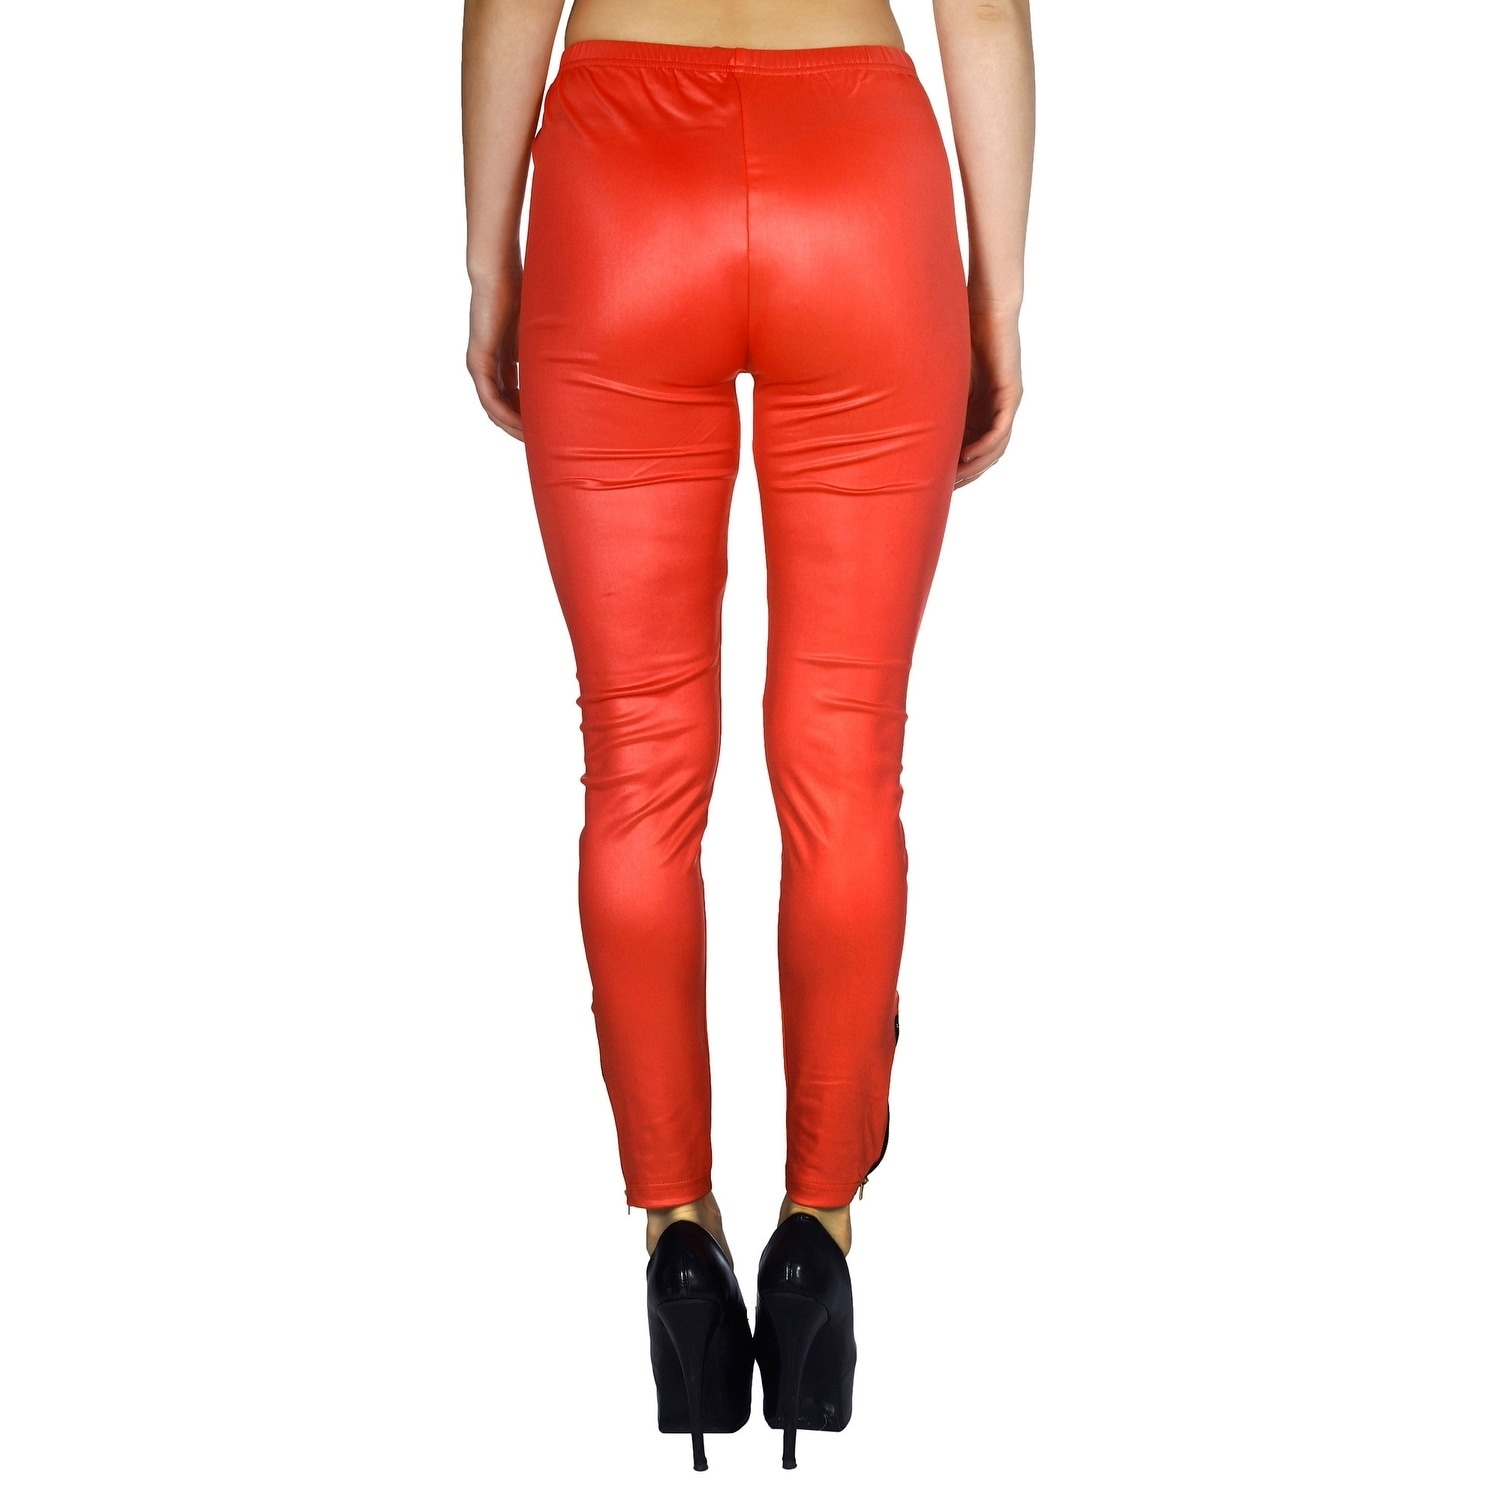 03d9a13442d38 Shop Women's Hi-Waist Wet Look Faux Leather Leggings with Ankle Zipper - Coral  Red - On Sale - Ships To Canada - Overstock.ca - 18220304